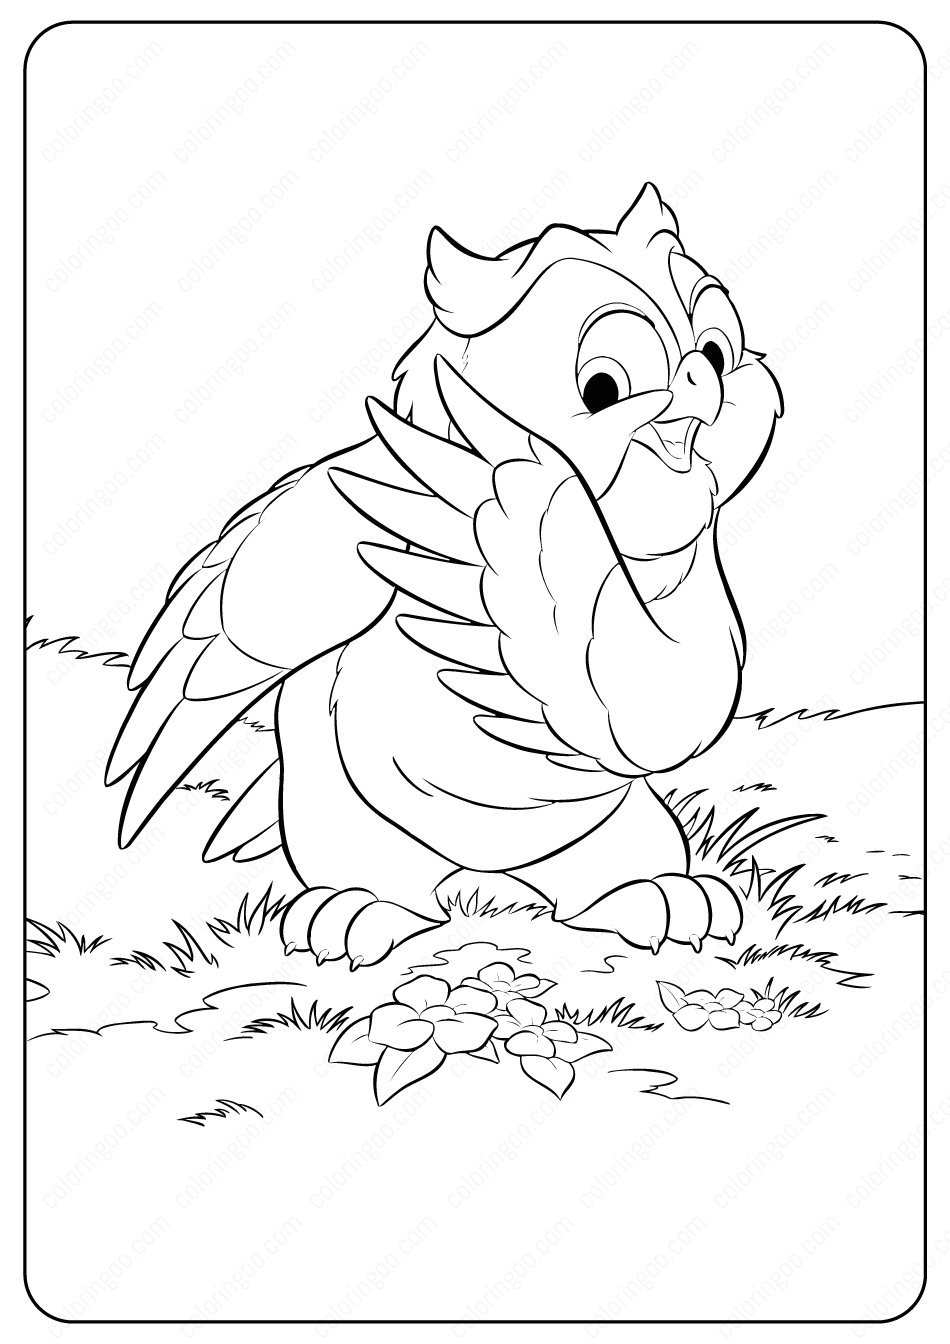 coloring pages disney animals 8 best lions images on pinterest coloring pages pages disney coloring animals